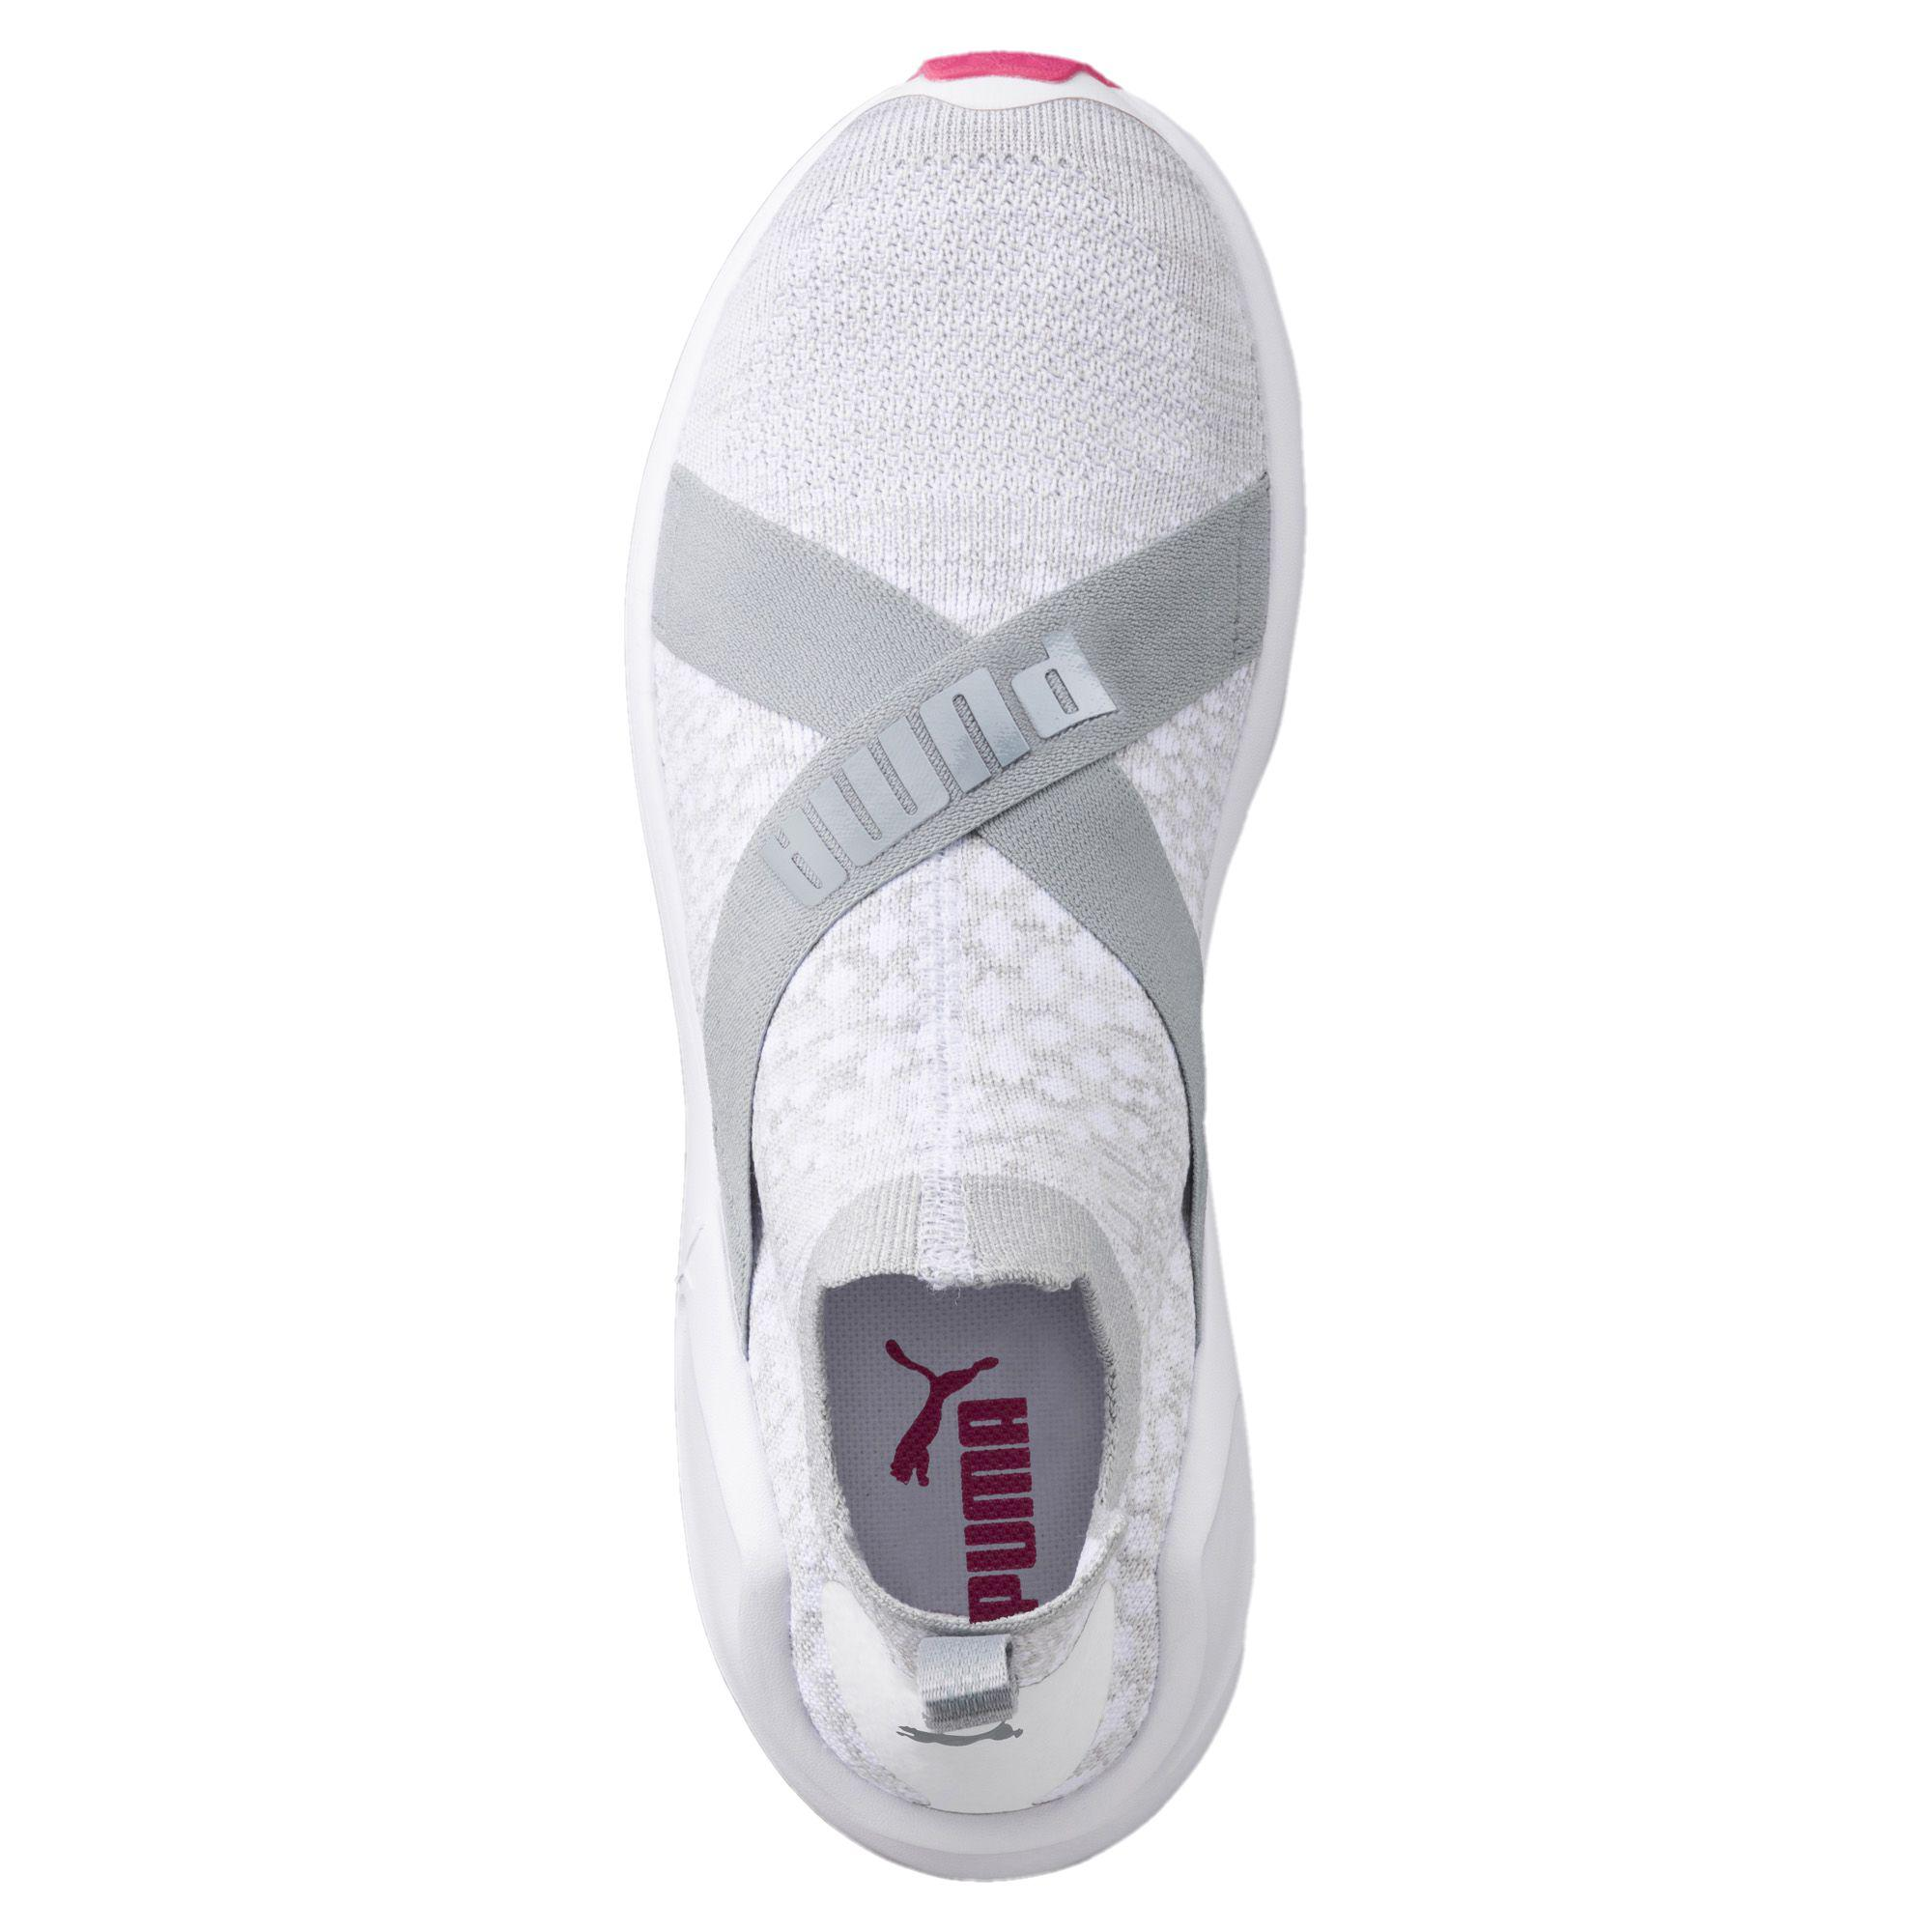 Lyst - PUMA Fierce Evoknit Women s Training Shoes in White 1f09df75d